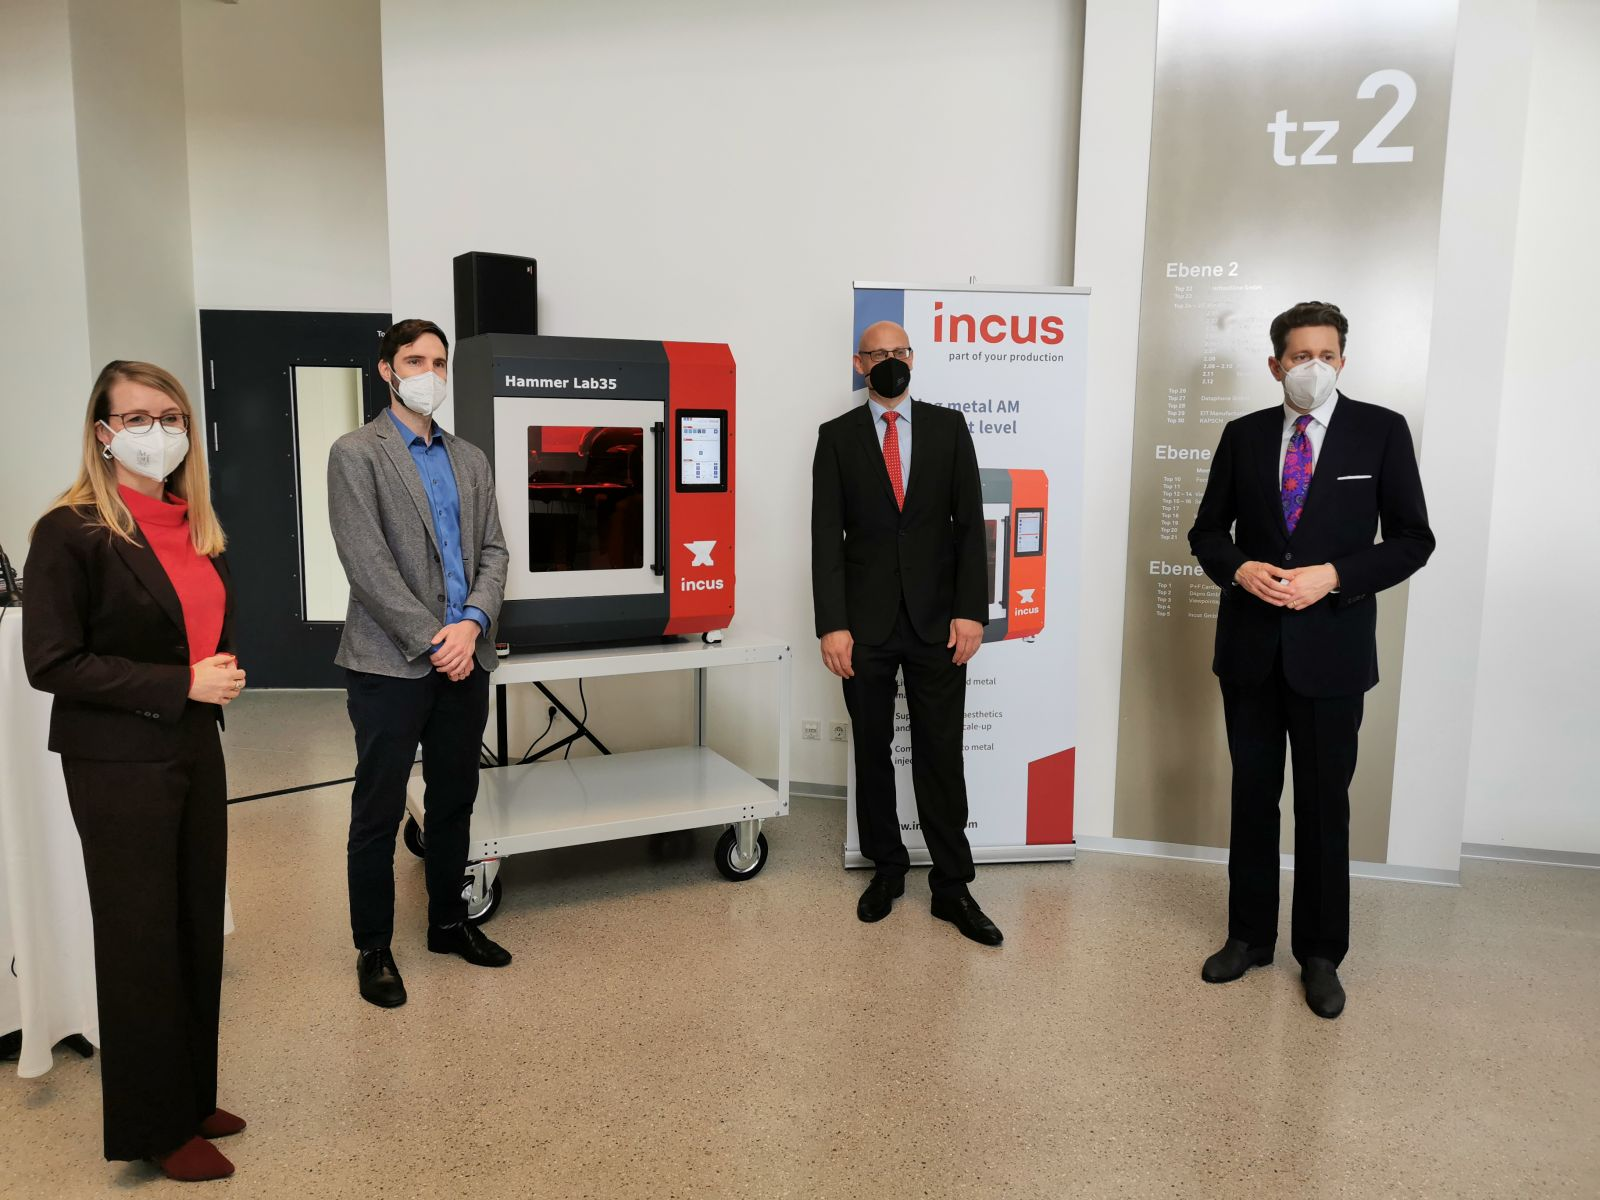 Federal Minister for Digital and Economic Affairs Visits Incus Headquarter